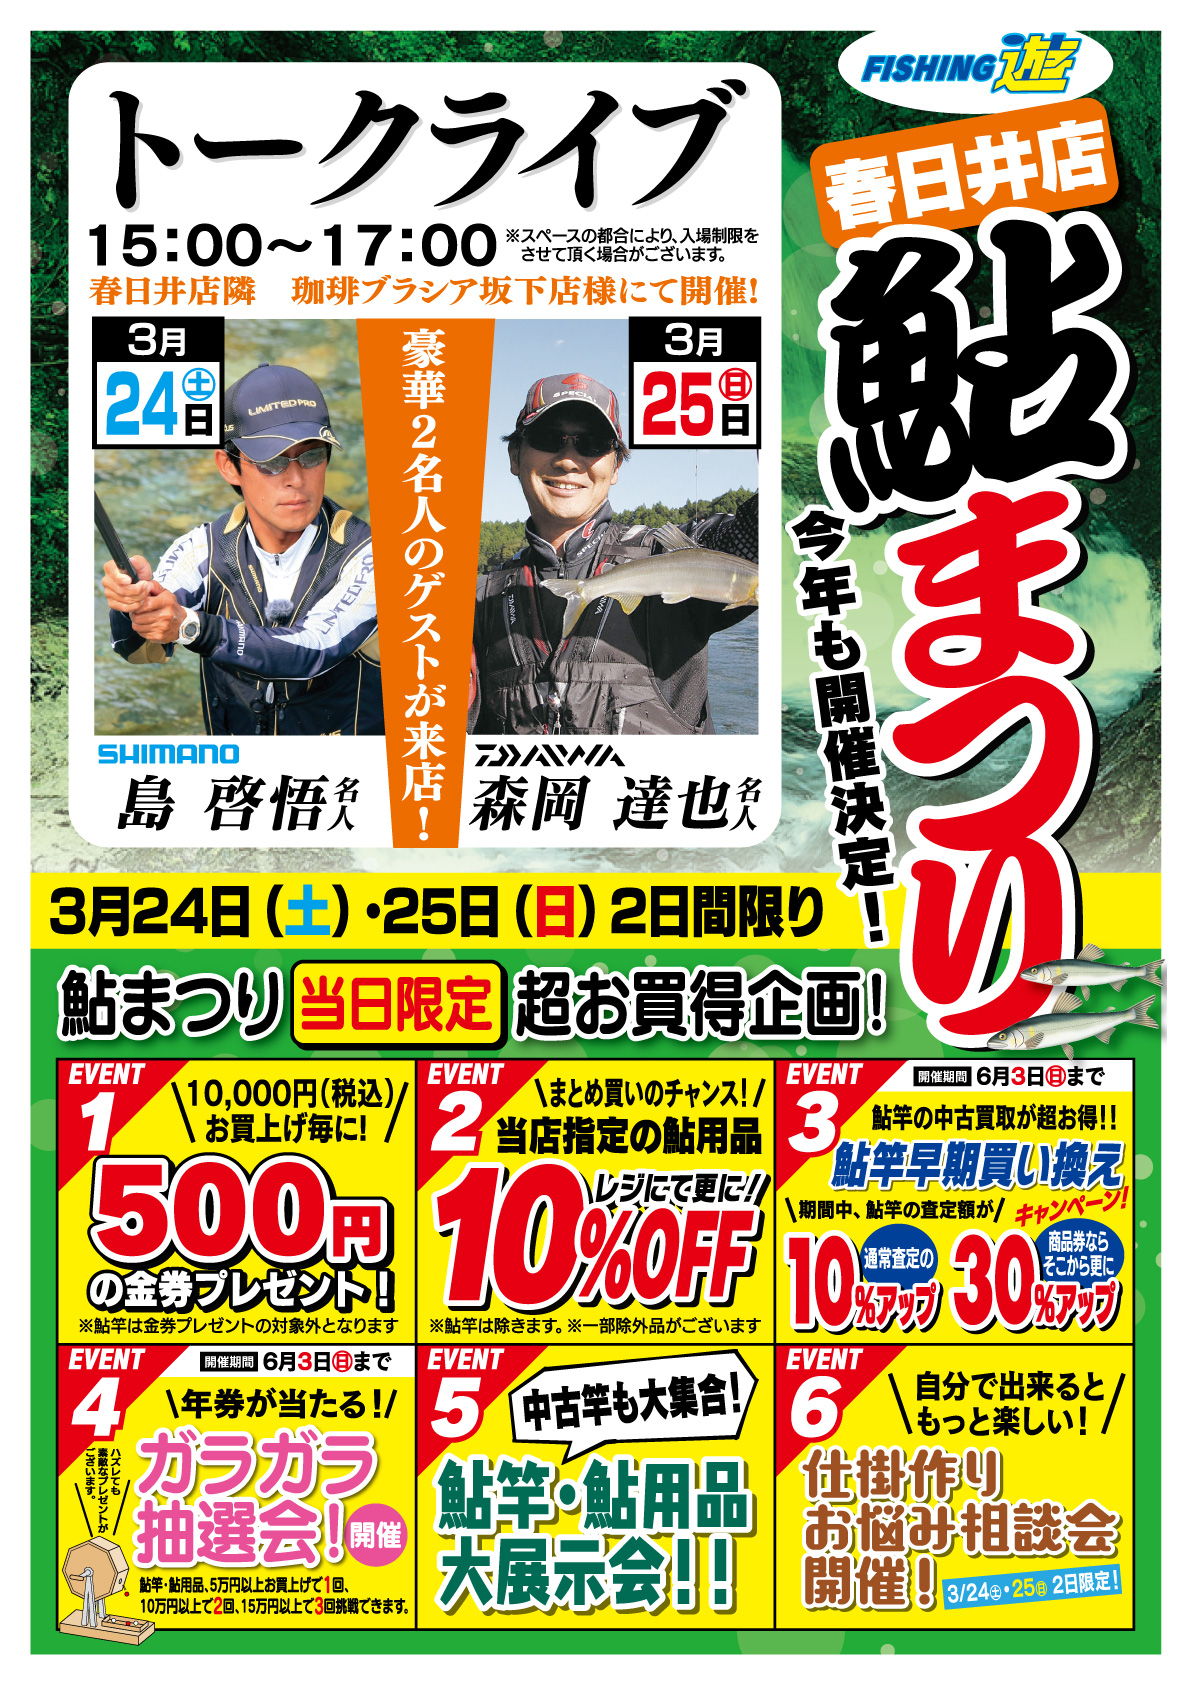 <a href=&quot;http://fishing-you.com/event/180324_25kasugai&quot;>春日井店 鮎まつり</a>